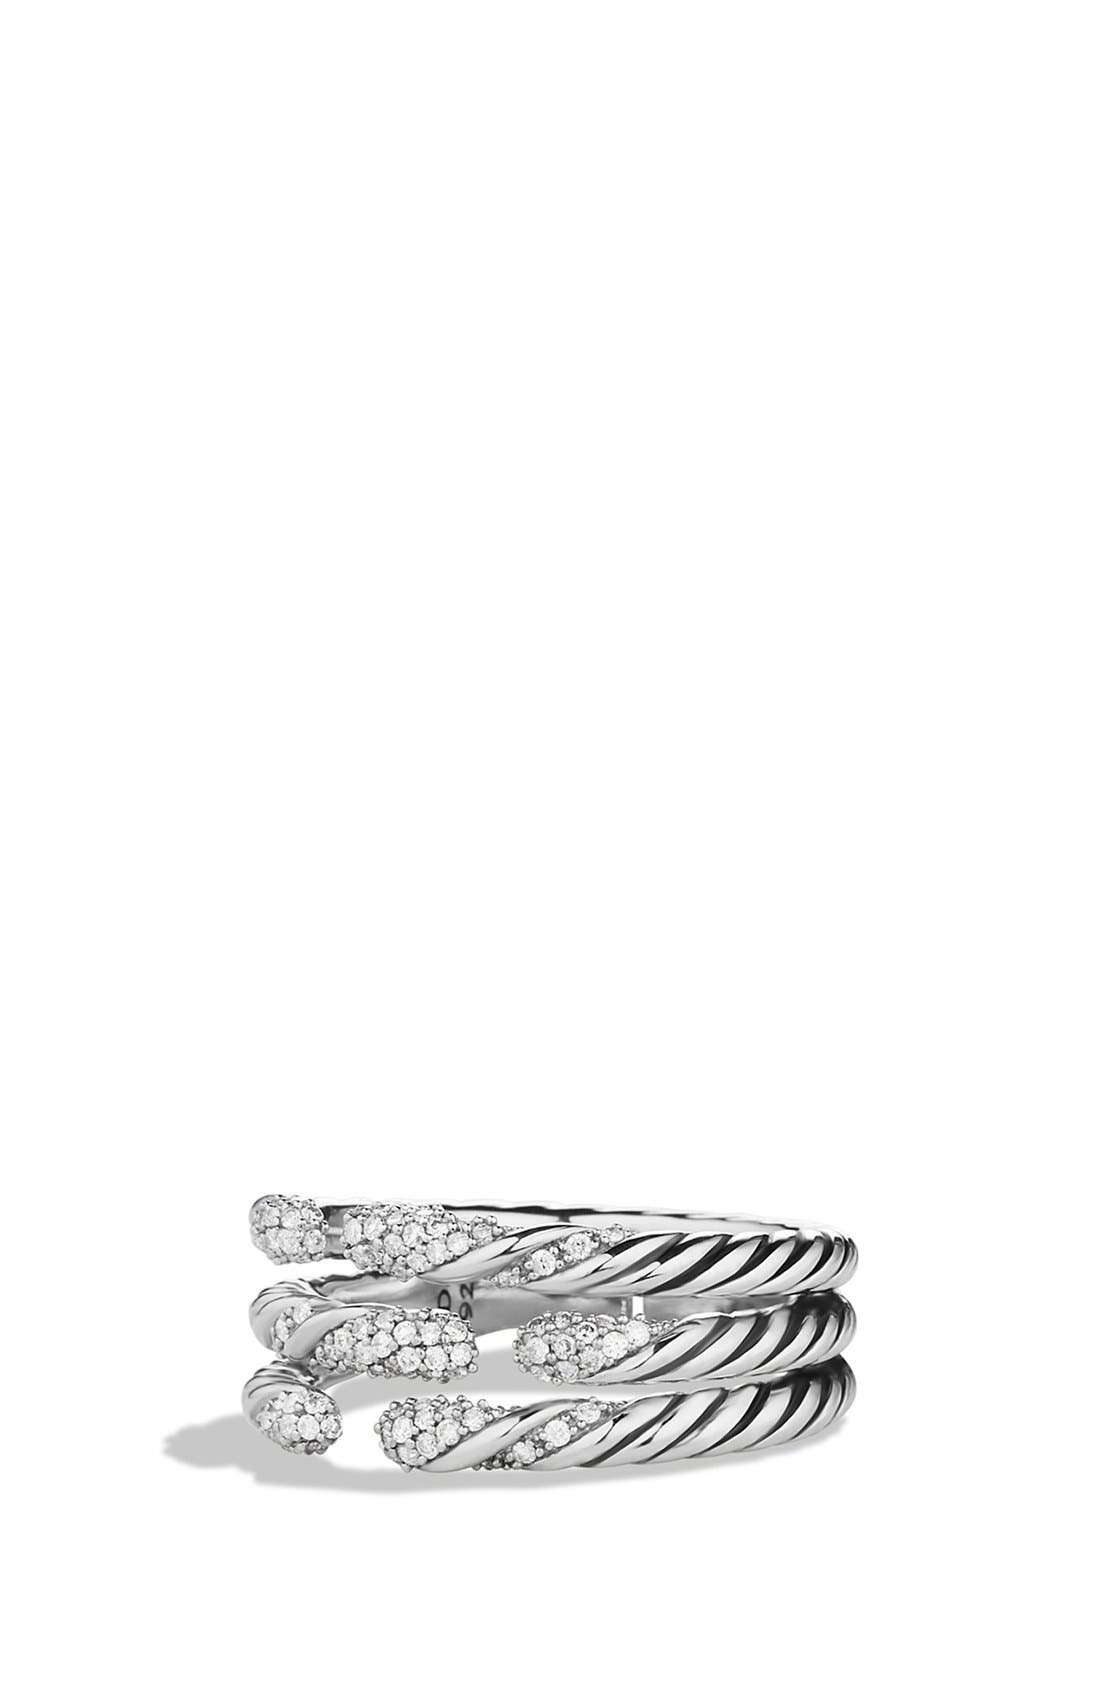 'Willow' Three-Row Ring with Diamonds,                             Main thumbnail 1, color,